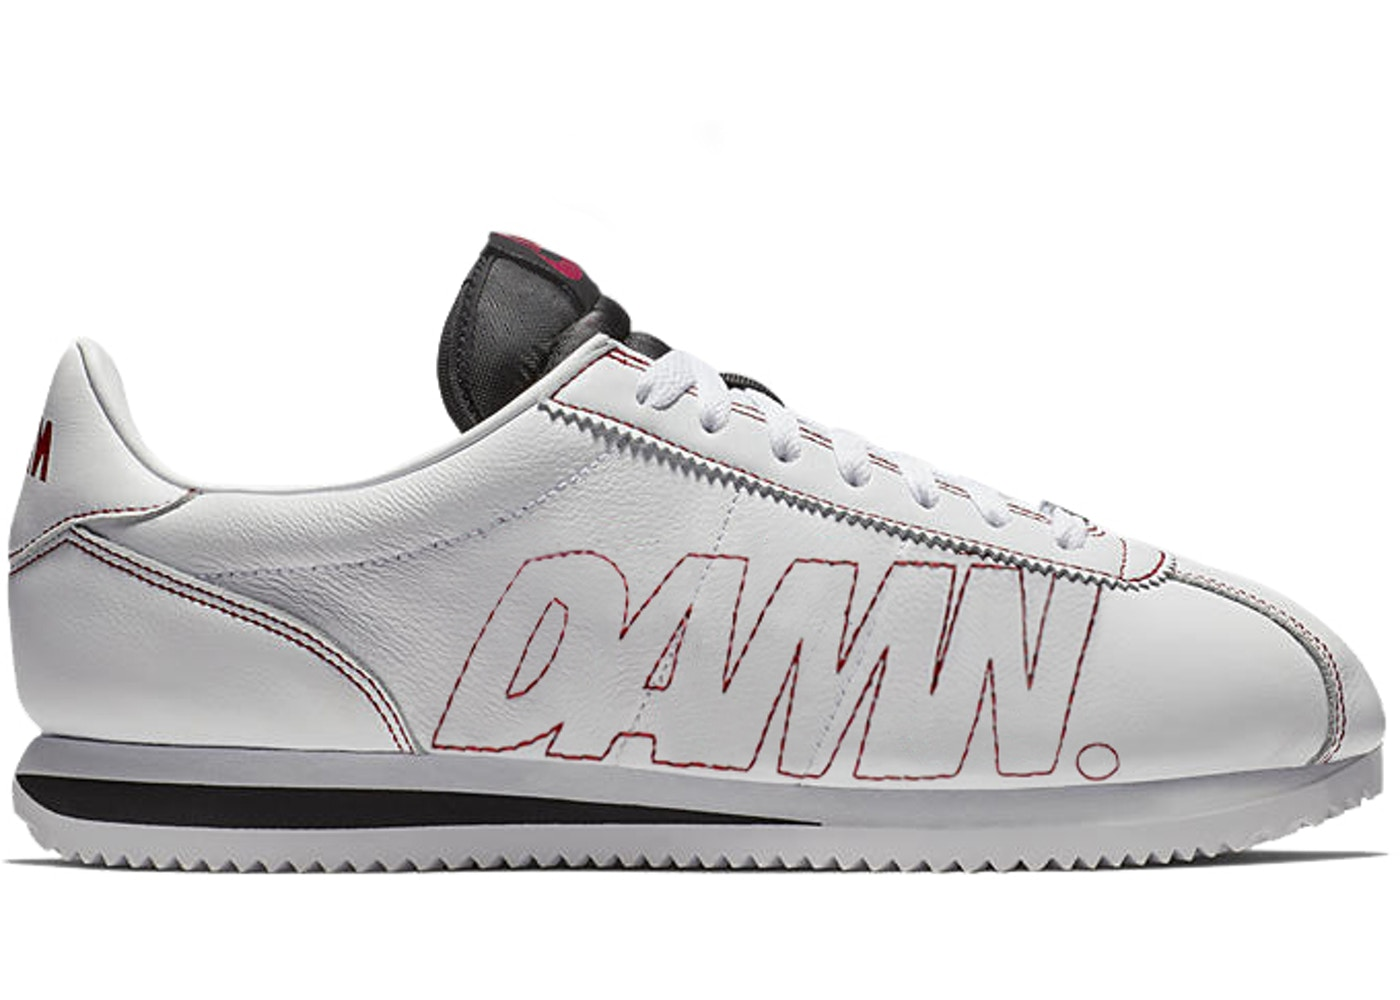 san francisco affordable price new images of Nike Cortez Kenny 1 Kendrick Lamar Damn White Gym Red